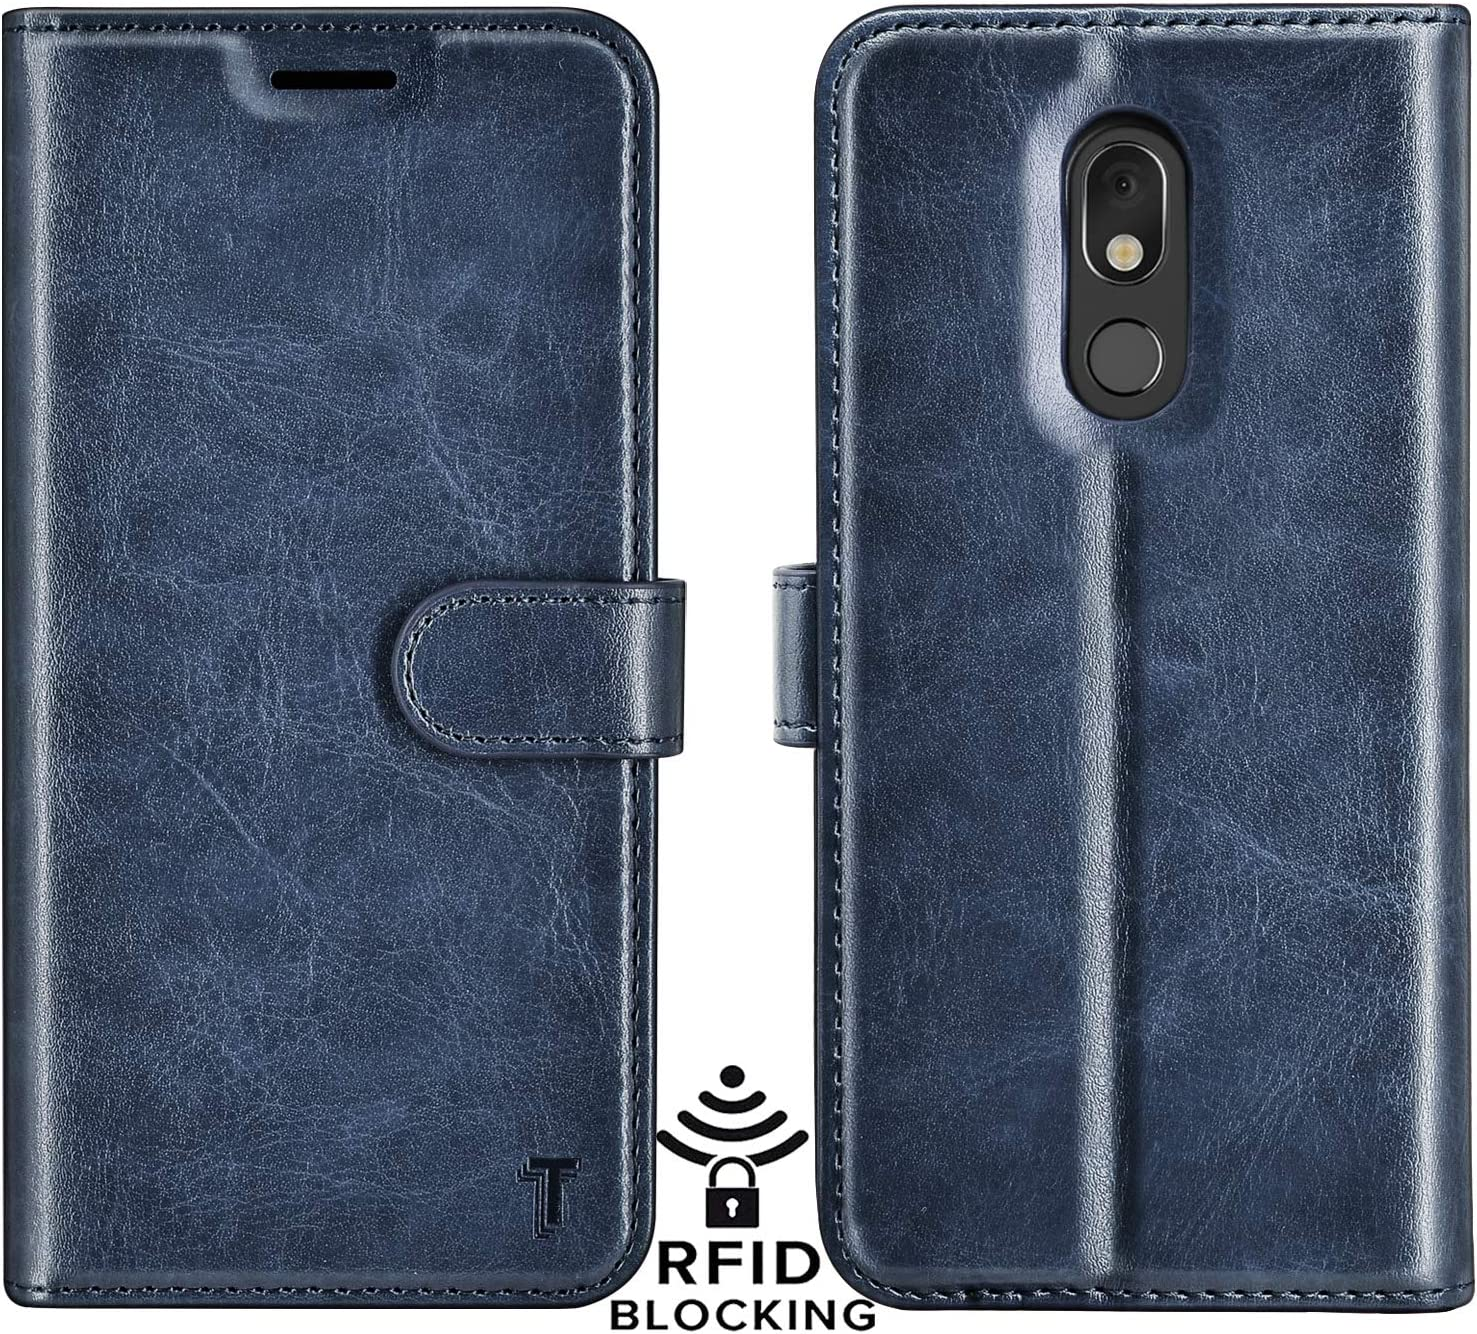 Njjex LG Stylo 5 Case, LG Stylo 5 Wallet Case, Stylo 5V/Stylo 5X/Stylo 5 Plus Case, RFID Blocking PU Leather Folio Flip ID Credit Card Slots Holder [Kickstand] Magnetic Closure Phone Cover [Dark Blue]